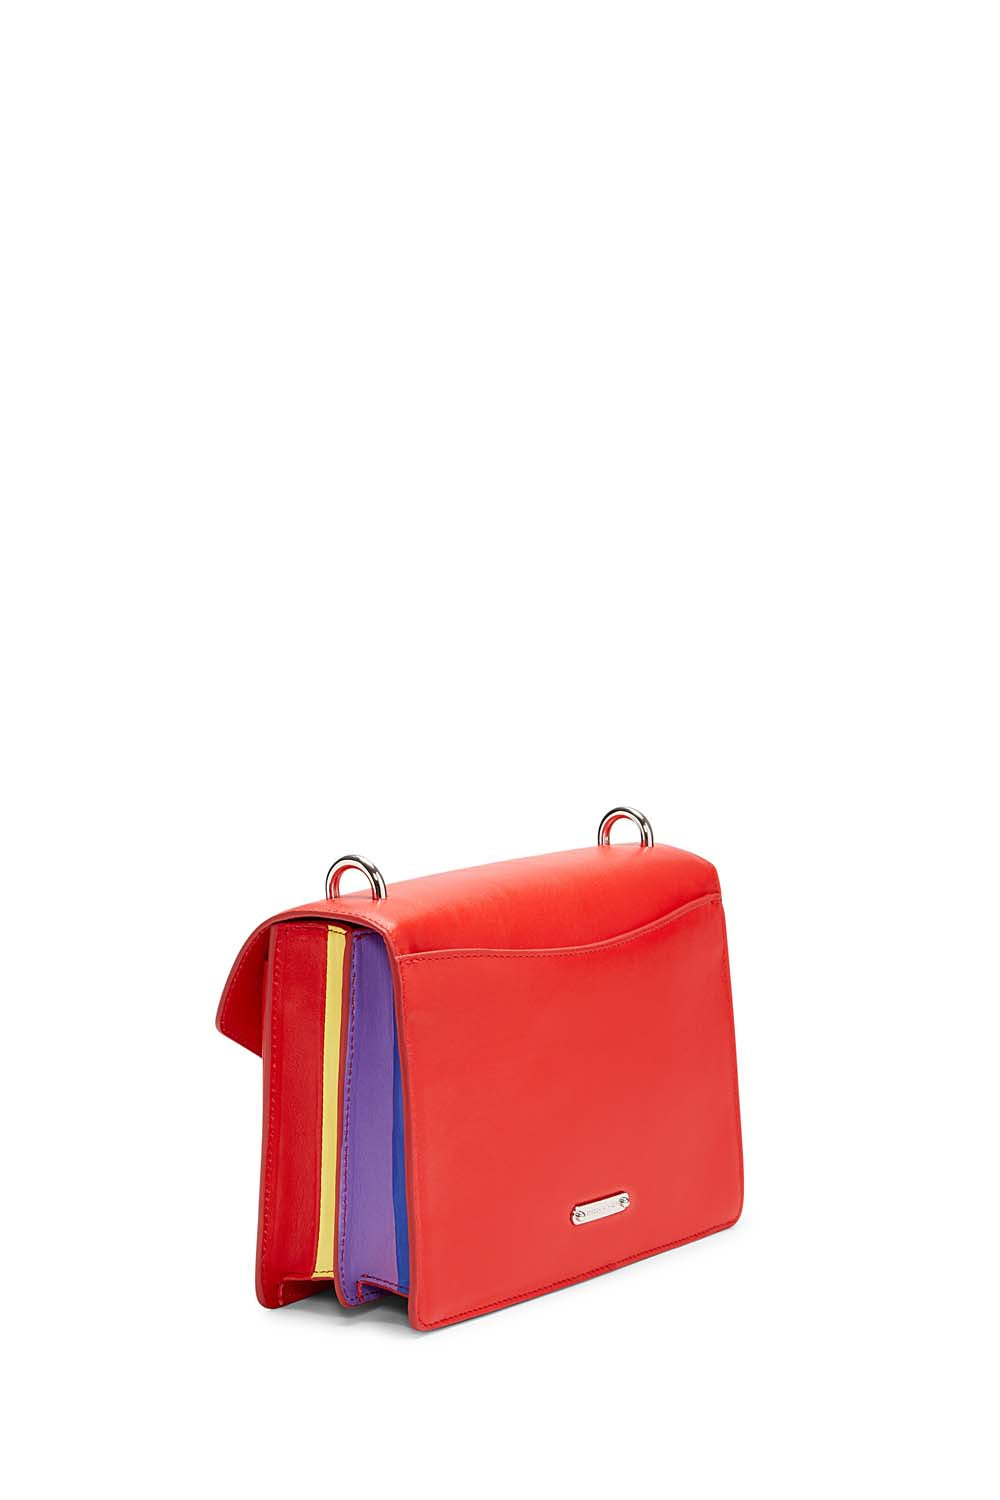 Jean Medium Shoulder Bag With Webbing Strap